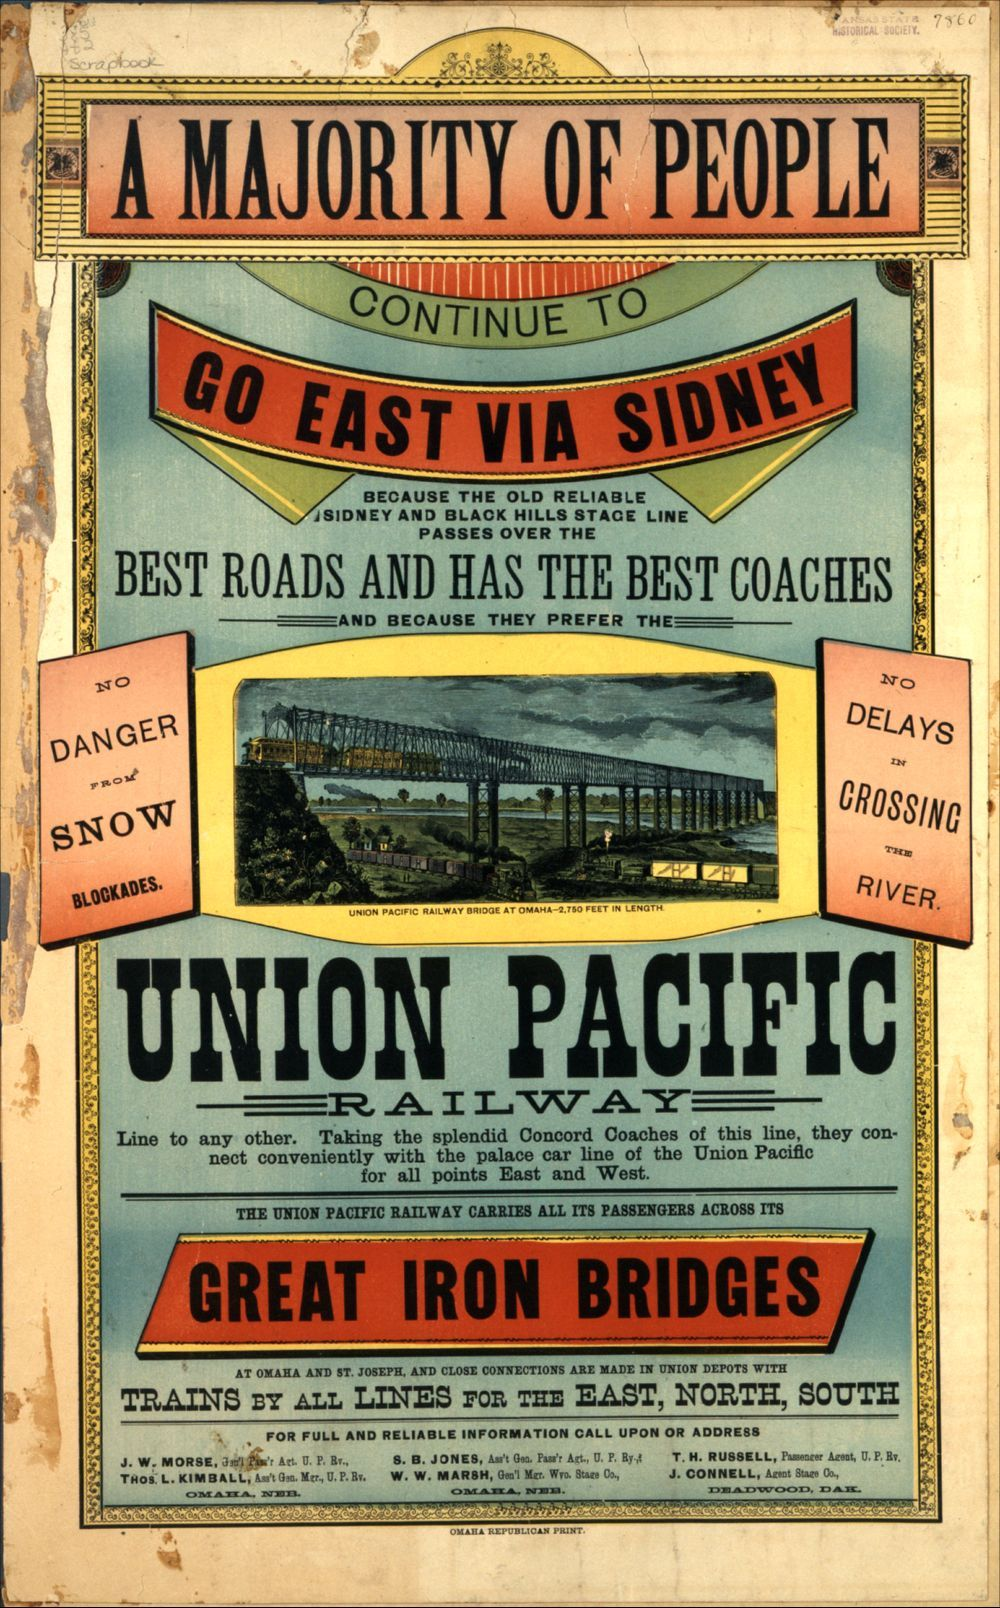 A majority of people continue to go east via Sidney on the Union Pacific Railway